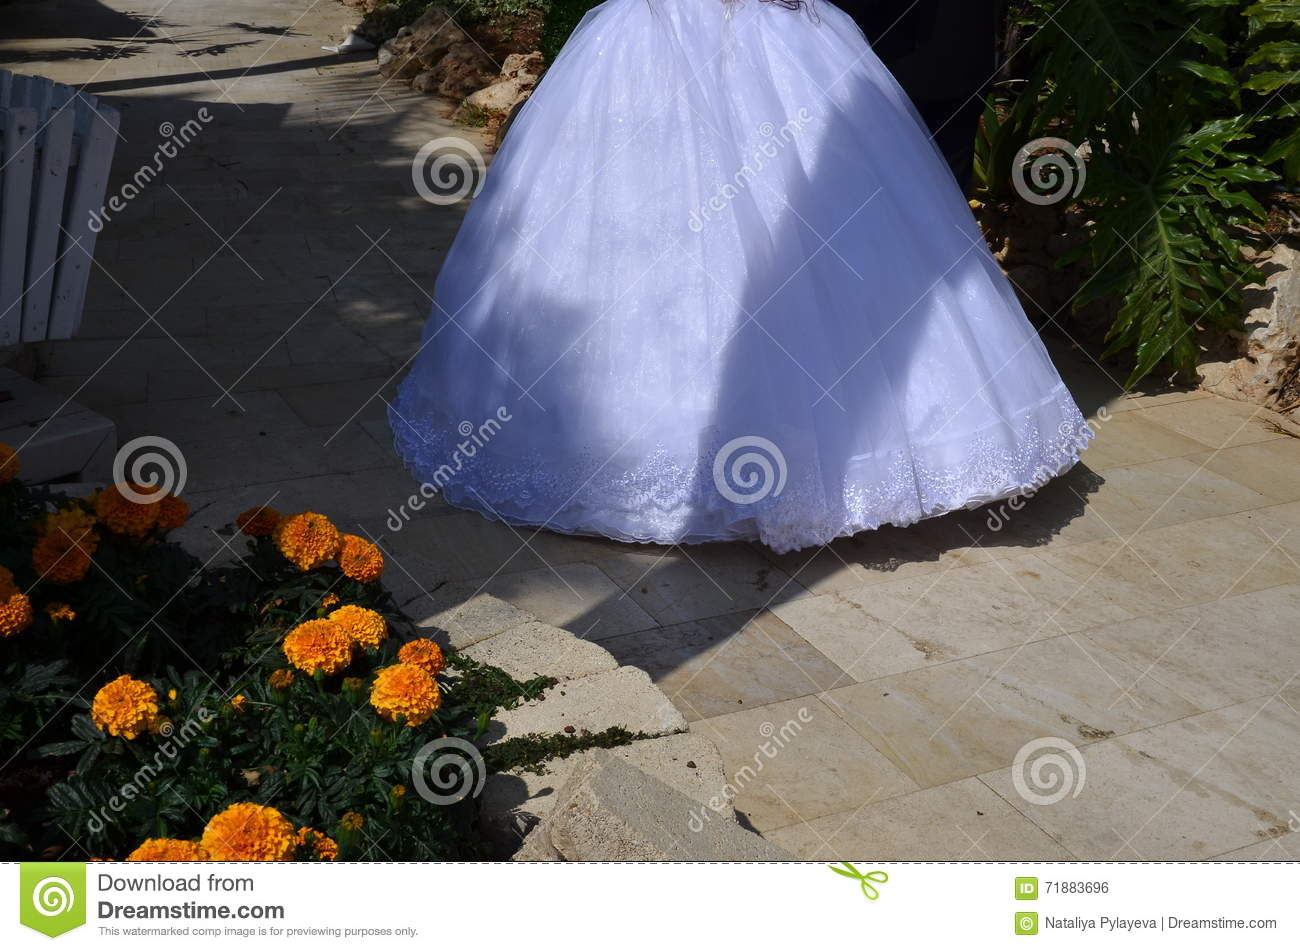 Hemline White Bride Dress In Shade In The Garden With Yellow Flowers